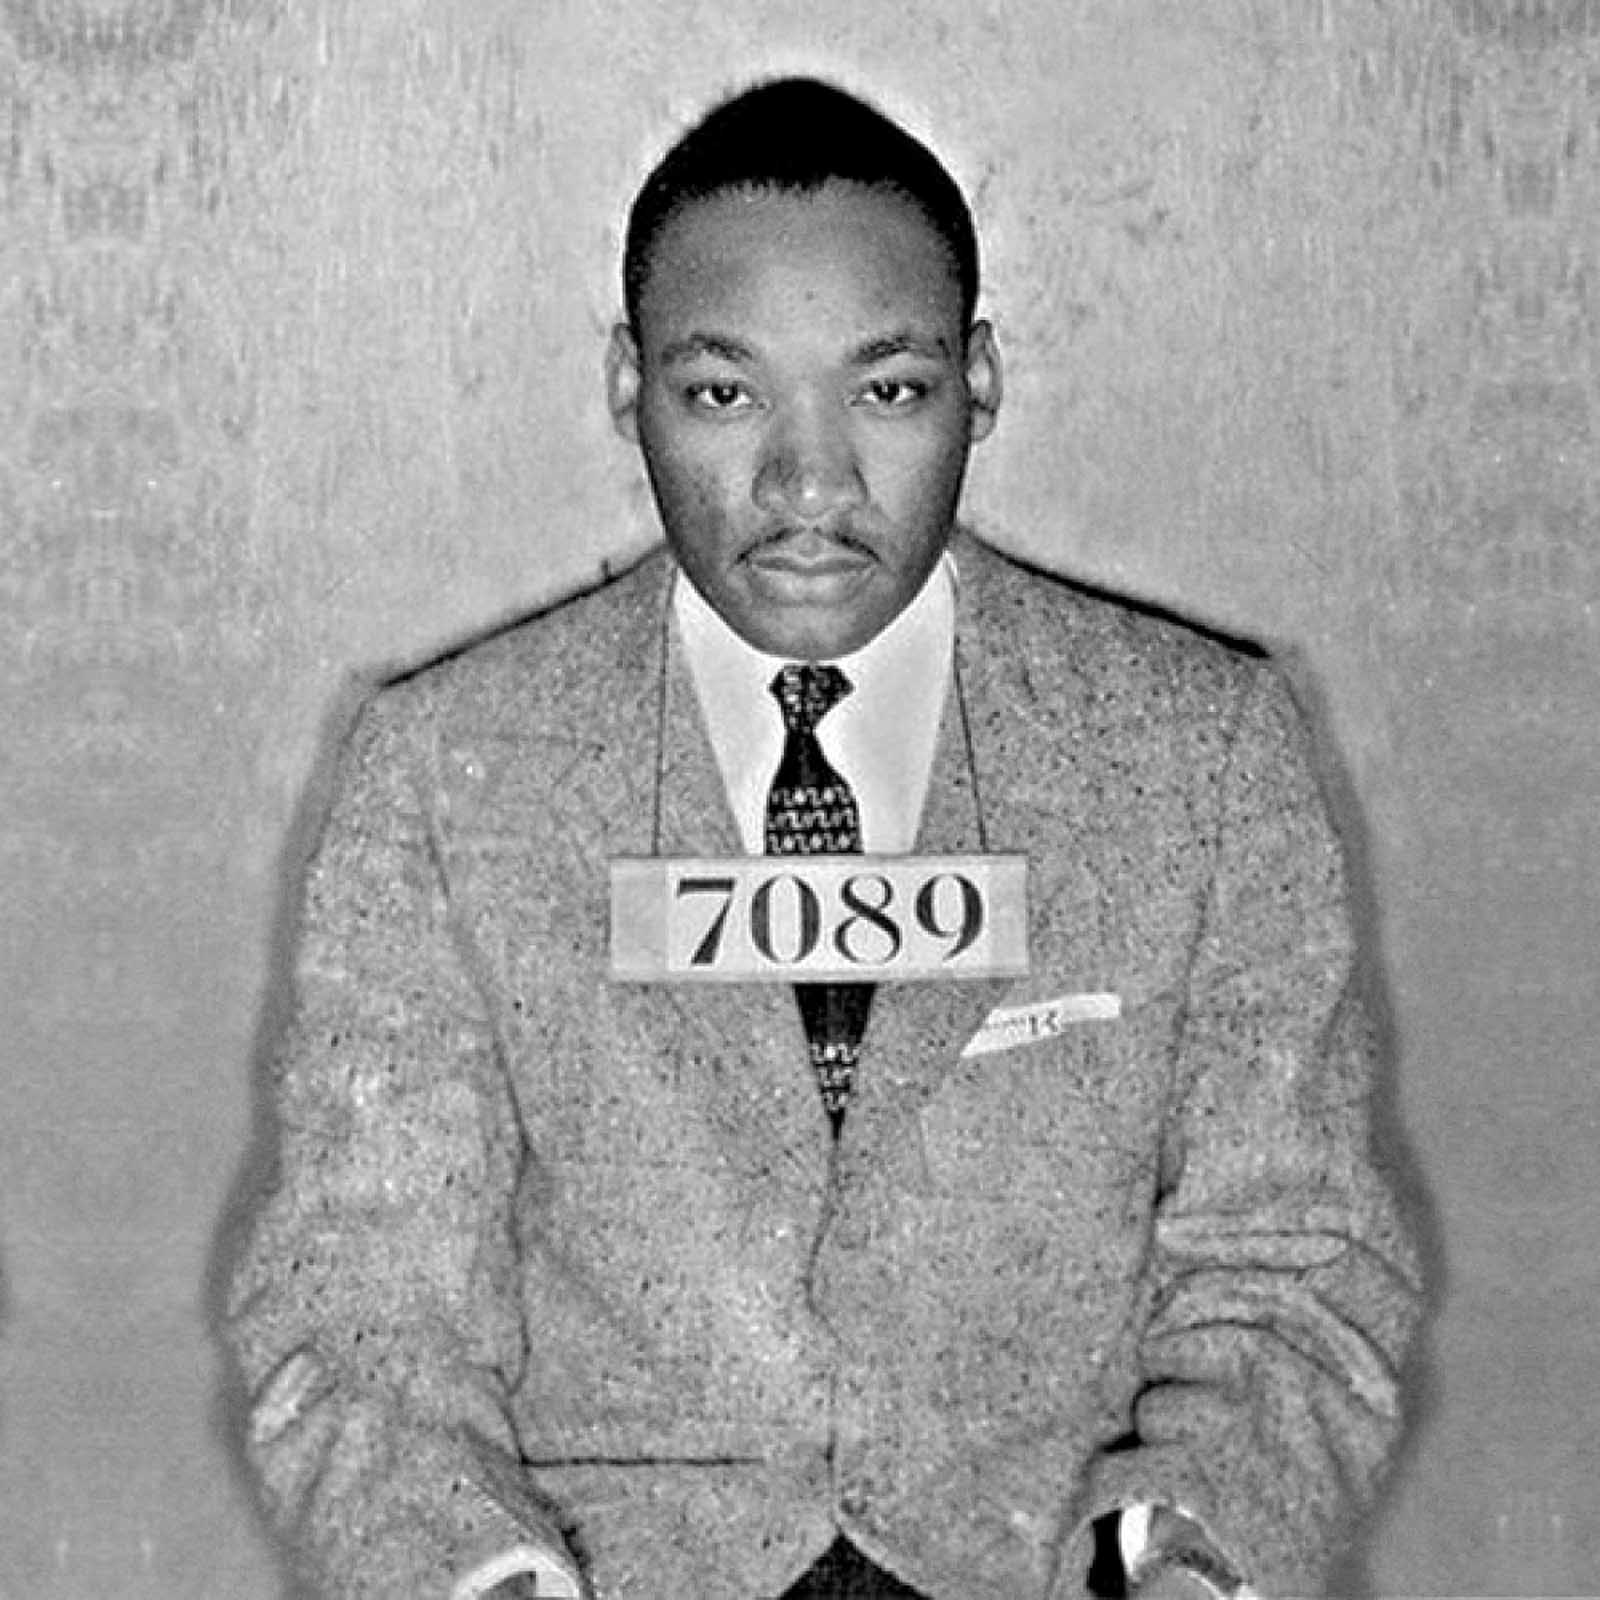 Martin Luther King Jr, 1956   Martin Luther King Jr was famously arrested in 1956 in Montgomery, Alabama while participating in the Rosa Parks inspired bus boycotts protesting bus segregation.  King won the Nobel Peace Prize  in 1964 for combatting racial inequality through nonviolent resistance. At age thirty-five, he was the youngest man ever to receive the Nobel prize.